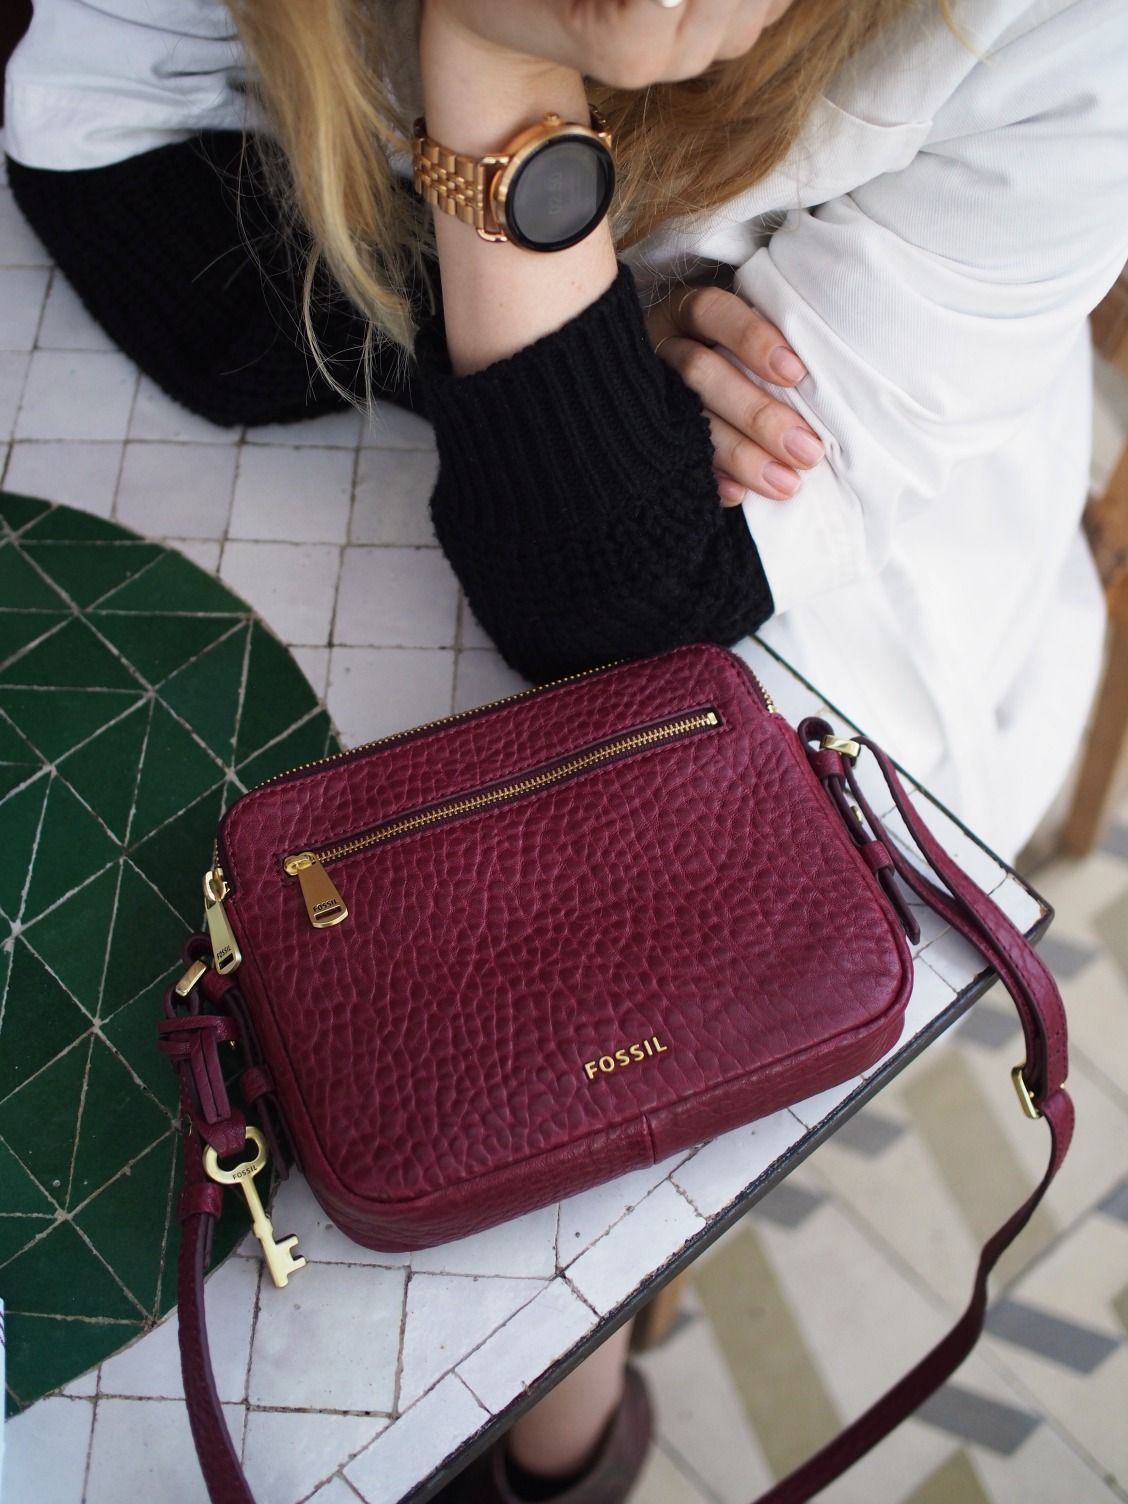 bdb6246c9a The rose gold Q Wander display smartwatch and the wine leather Piper  crossbody are a match made in heaven. via   taylranne